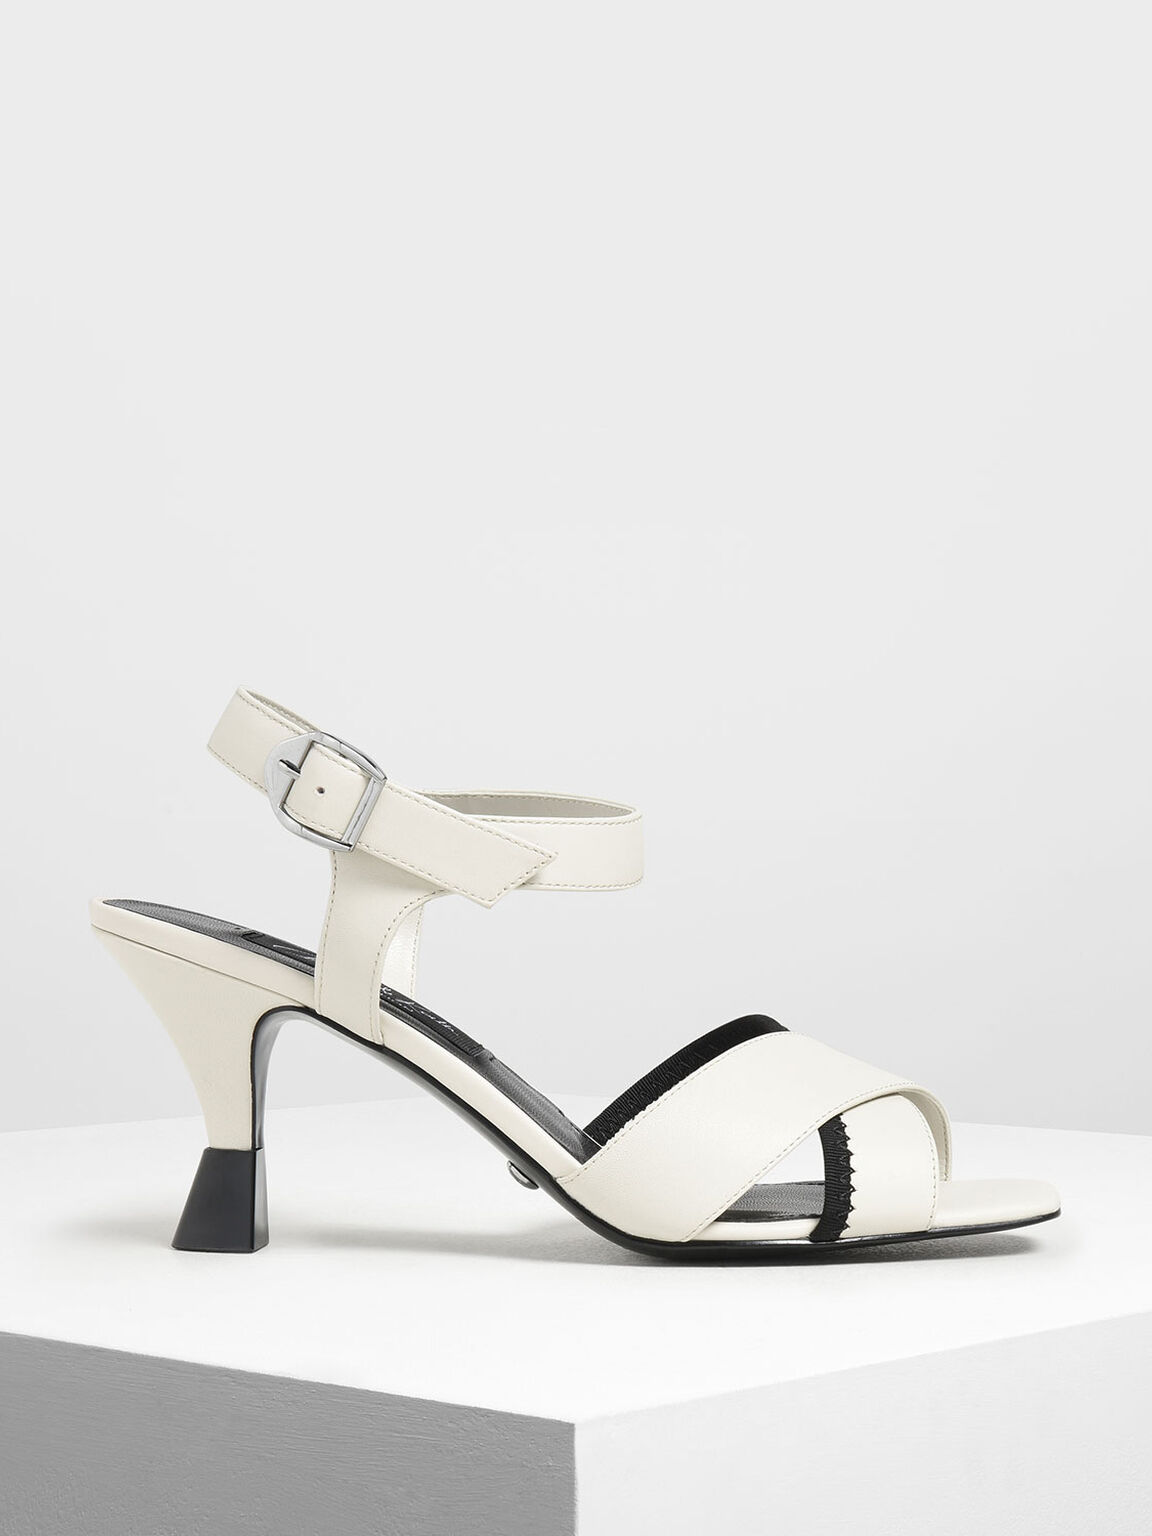 Leather Criss Cross Sculptural Heels, White, hi-res